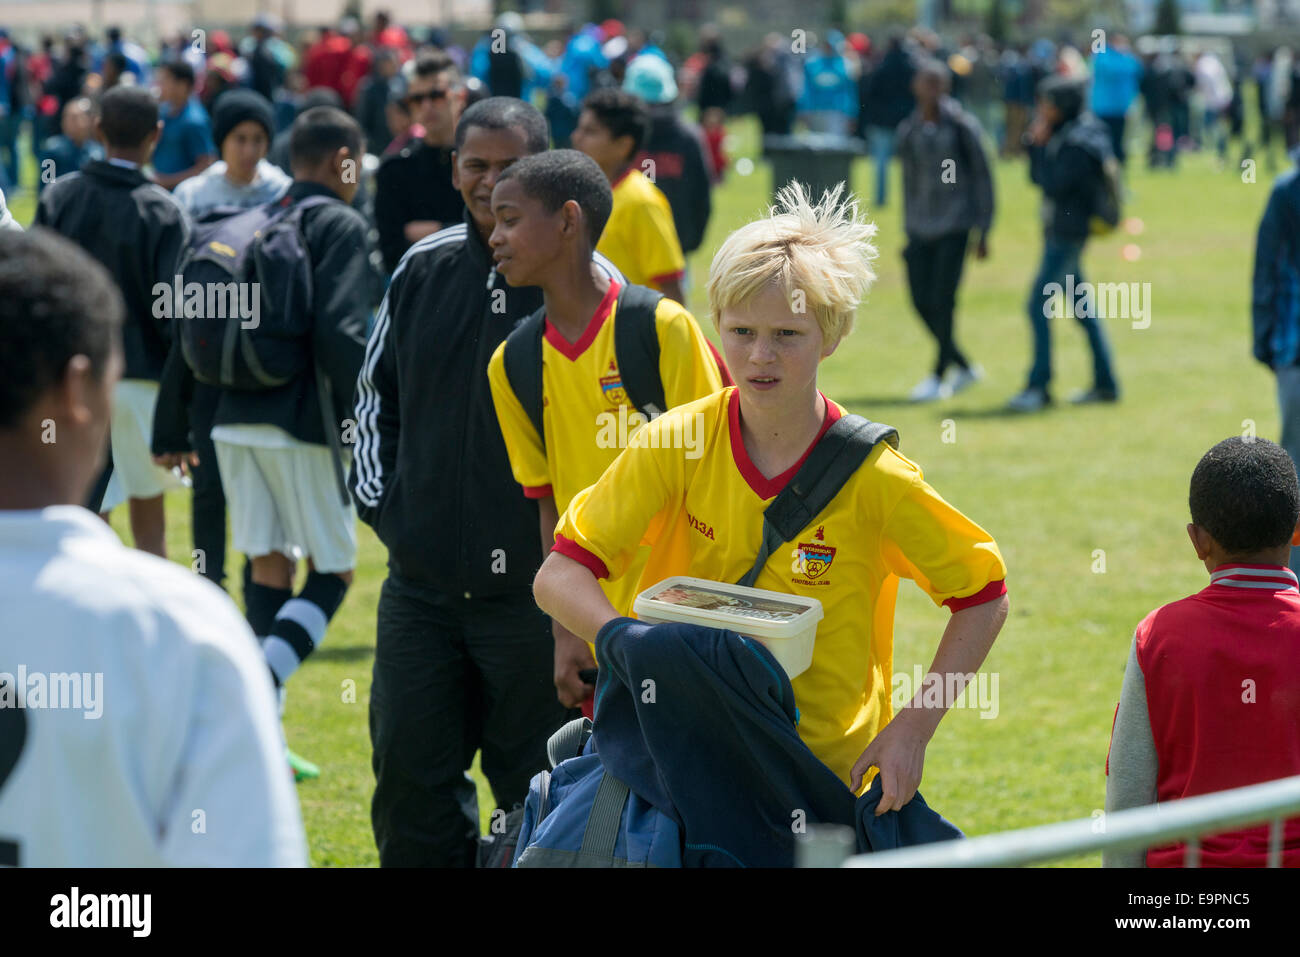 Junior football player walking off the field after a match, Cape Town, South Africa - Stock Image